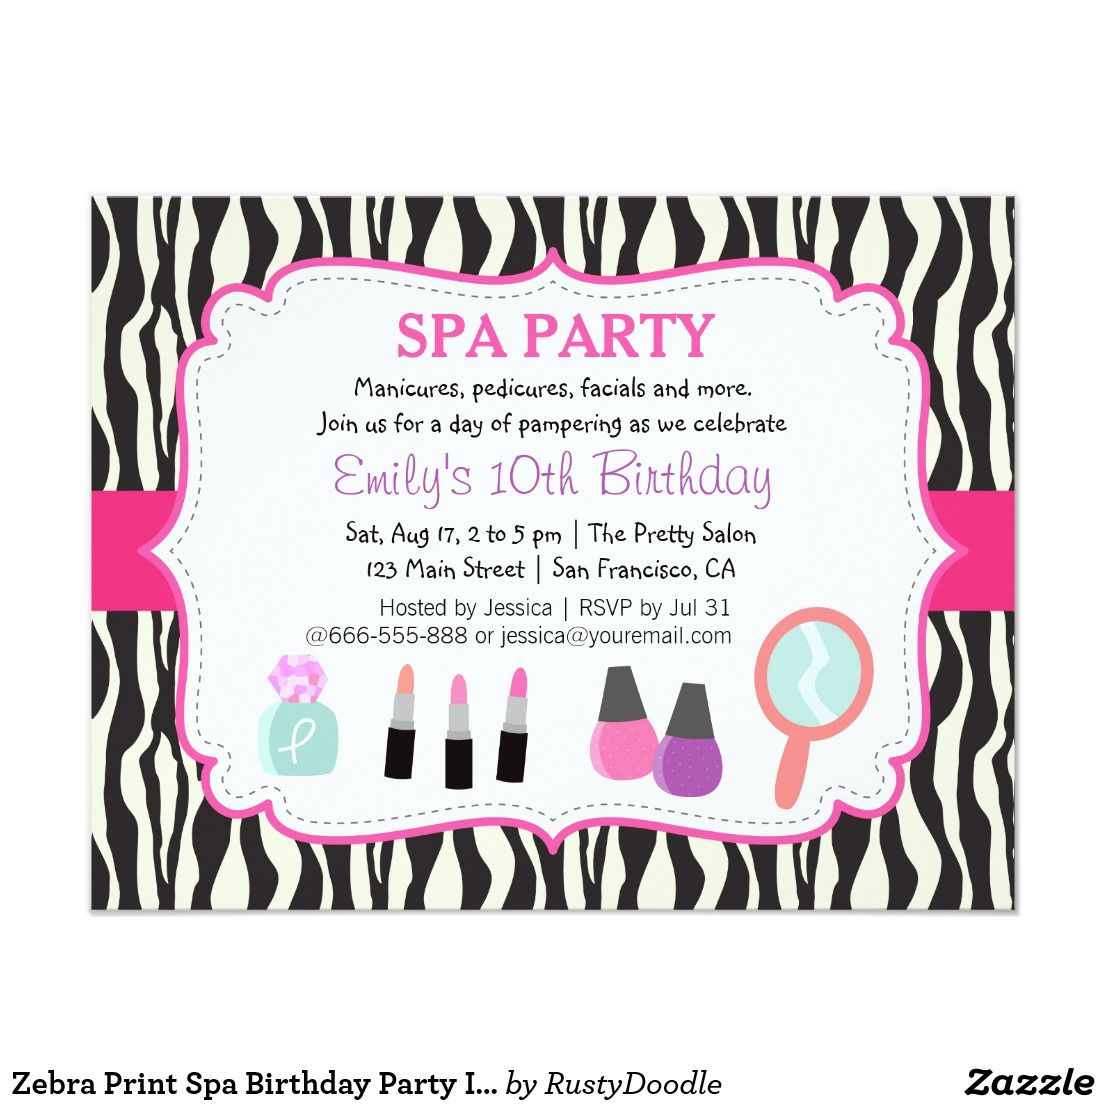 Zebra print spa birthday party invitation treat the birthday girl to zebra print spa birthday party invitation treat the birthday girl to a day of pampering together with her close gal friends ideas for activities include stopboris Choice Image